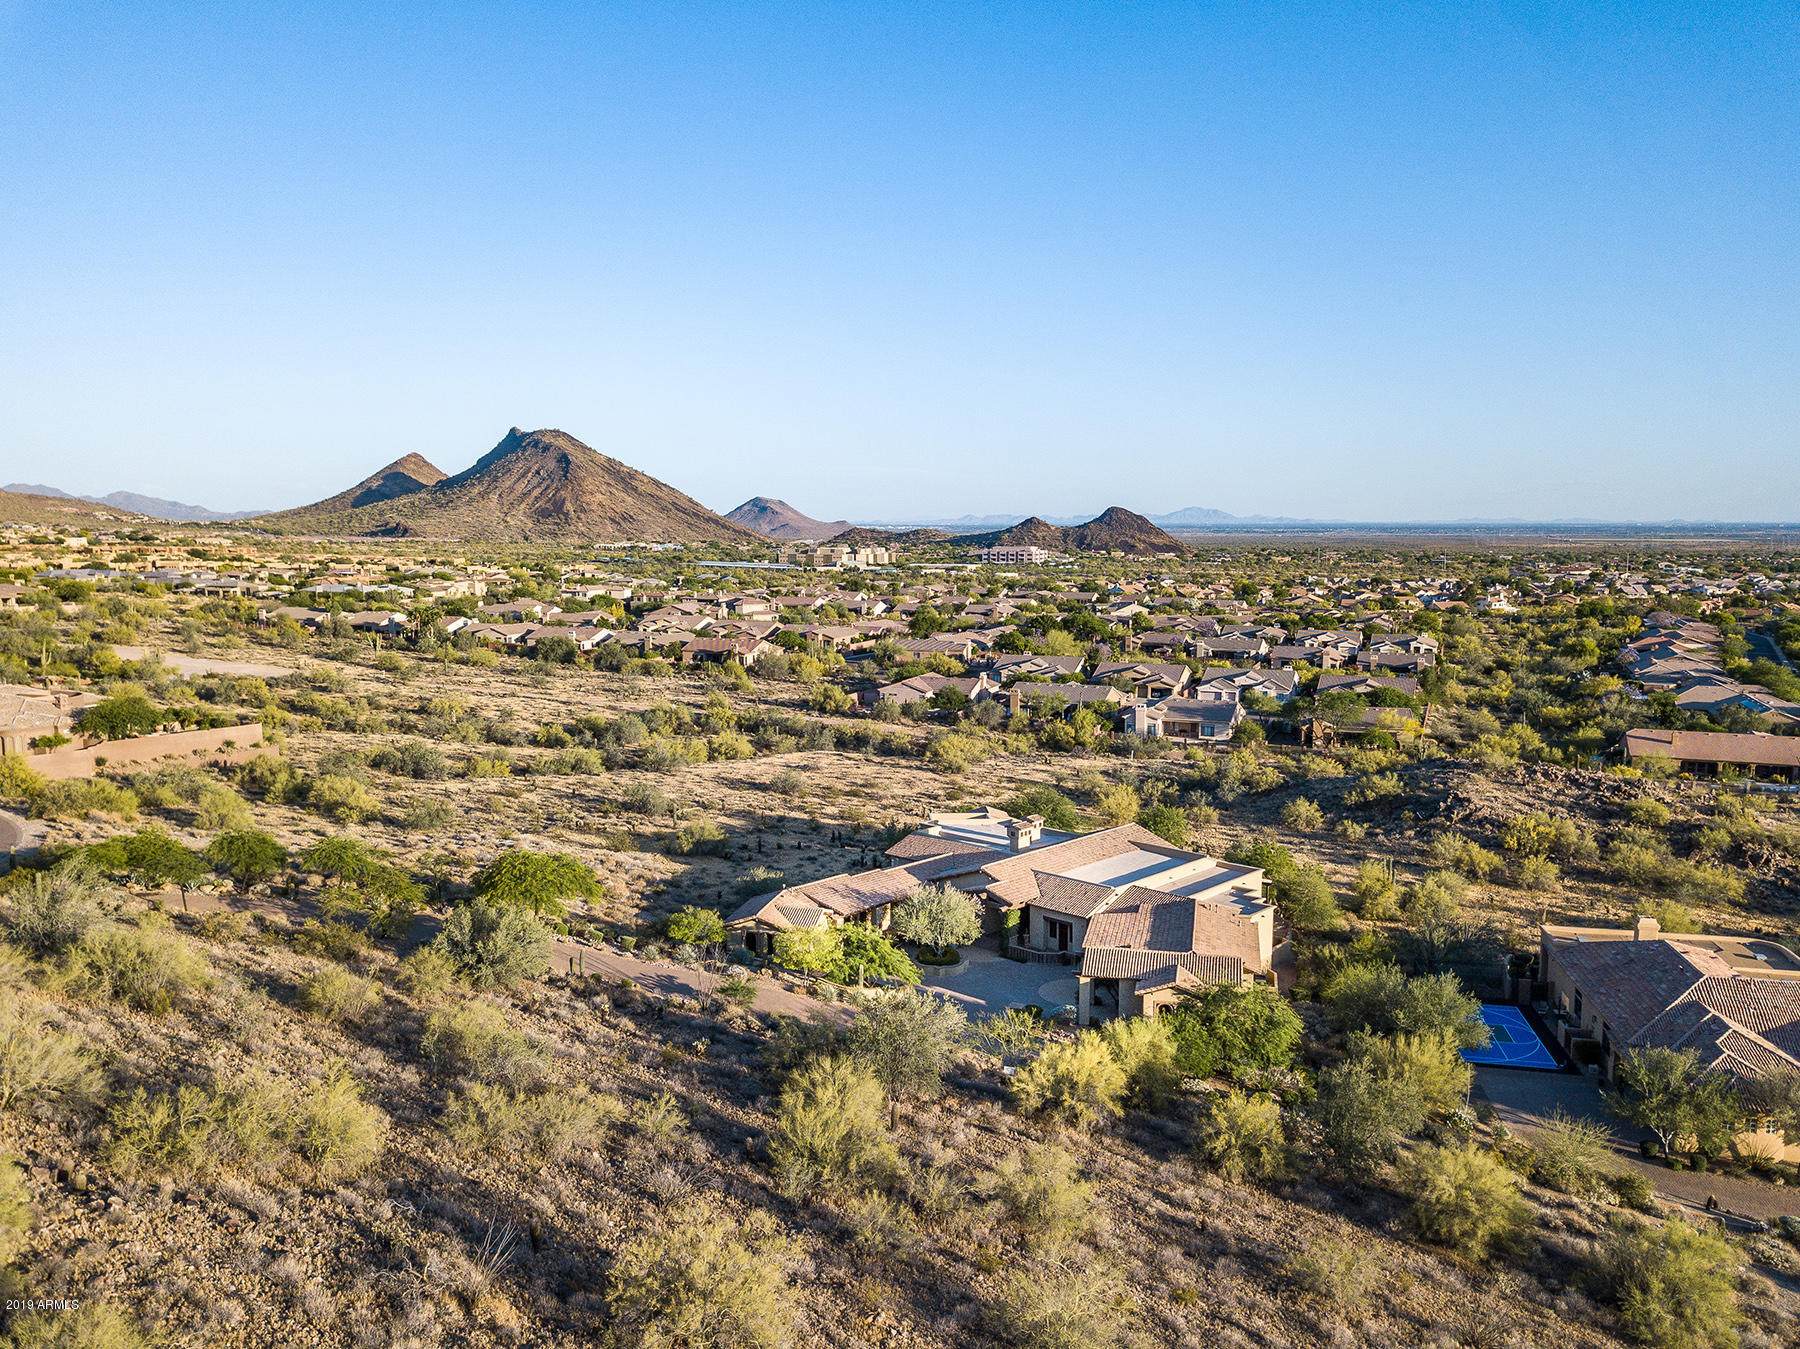 MLS 5927513 13015 E CIBOLA Road, Scottsdale, AZ 85259 85259